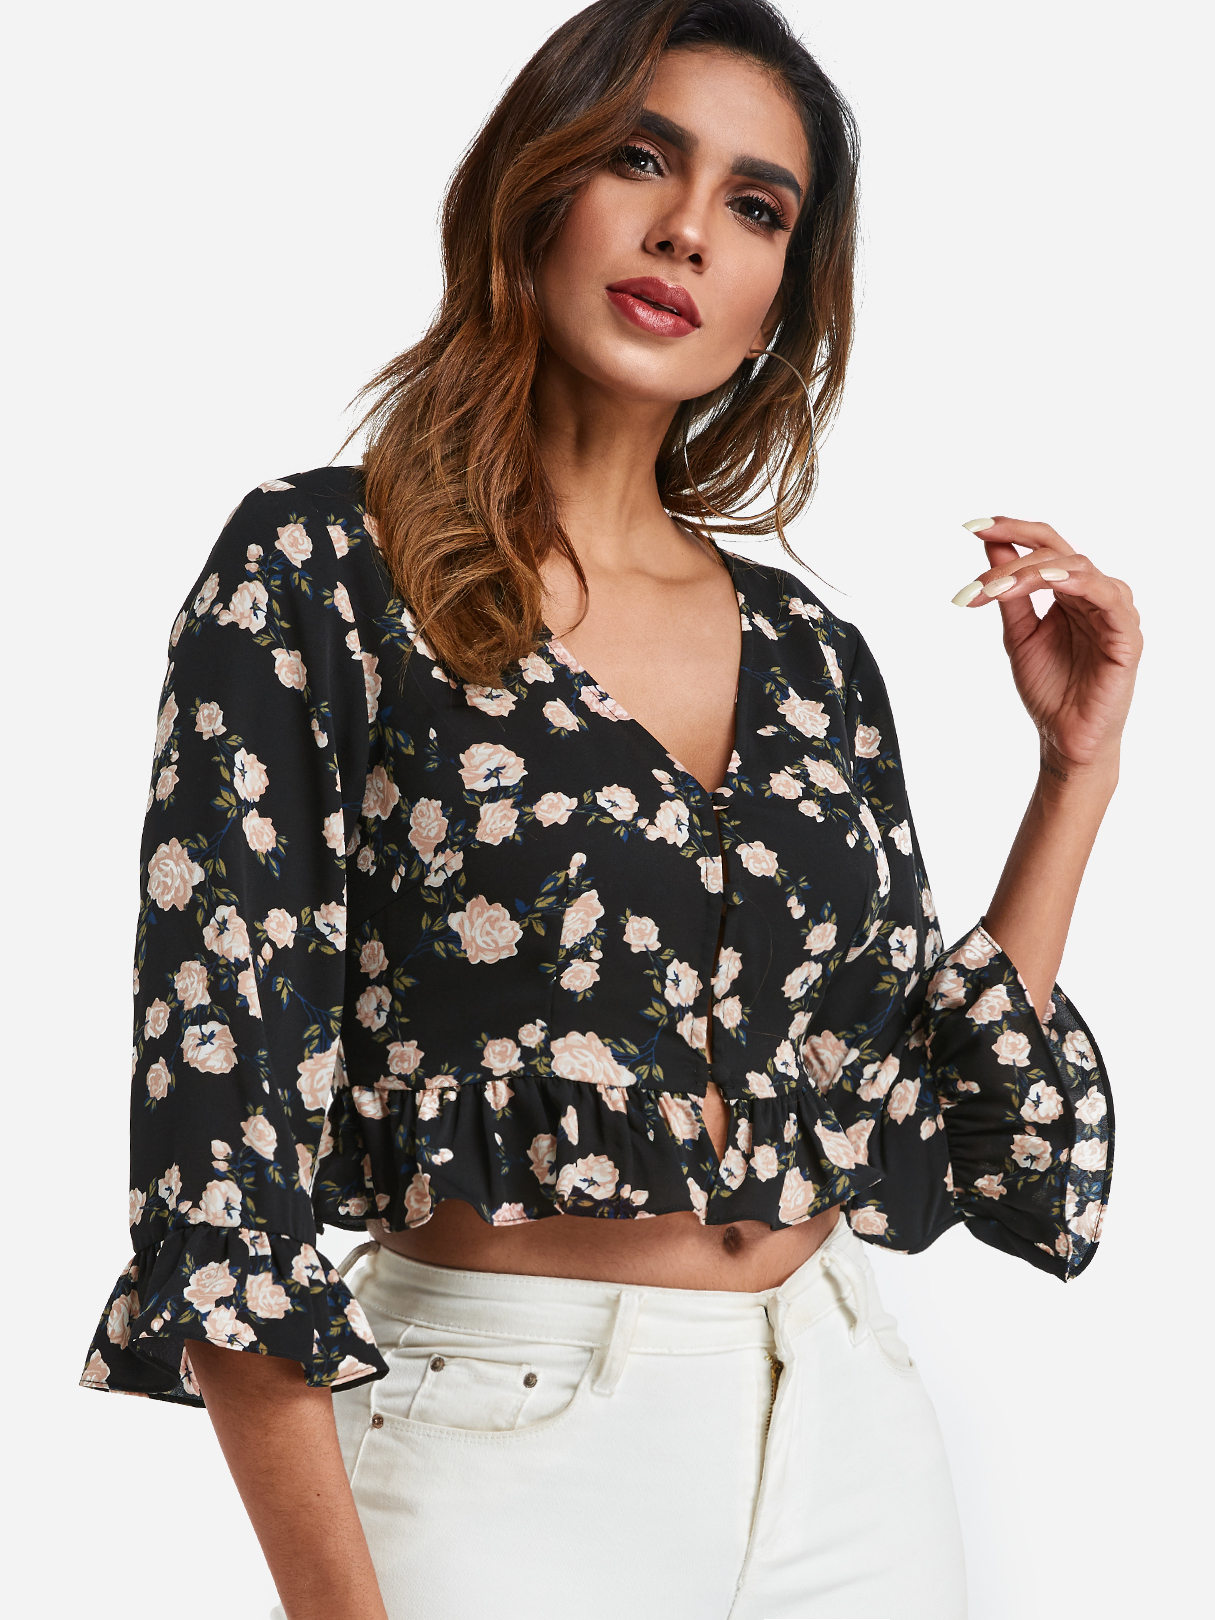 Black Random Floral Print Single Breasted 3/4 Length Sleeves Flounced Hem Blouse